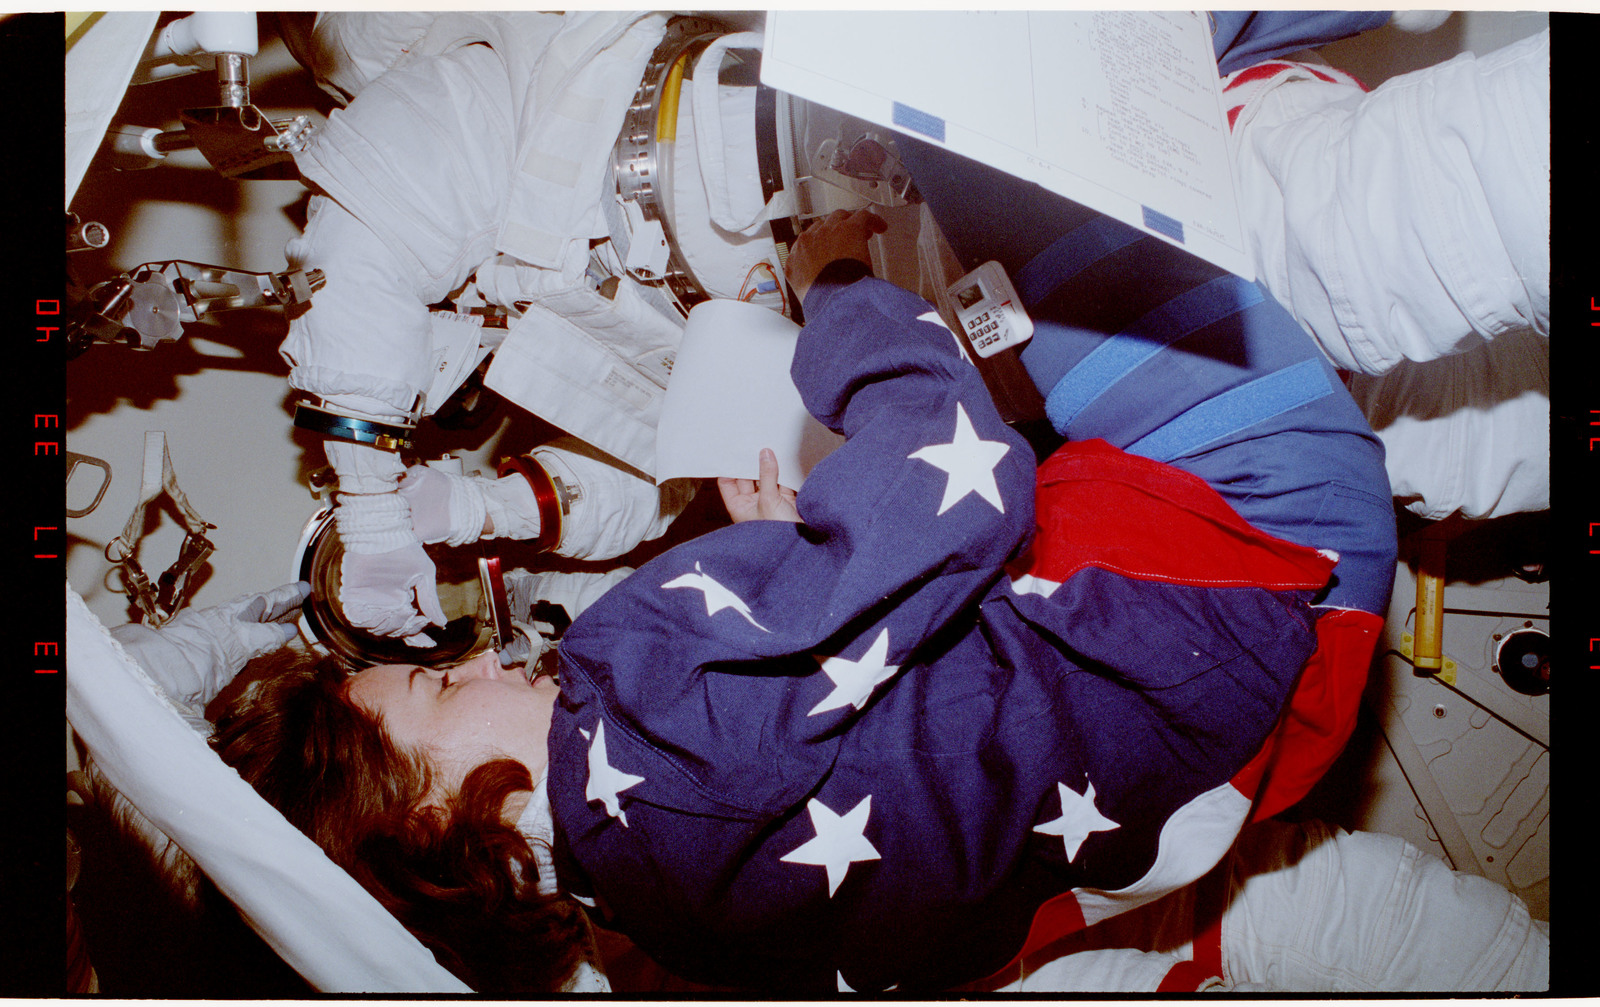 S49-39-025 - STS-049 - EVA crewmembers suiting up with the assistance of another crewmember.